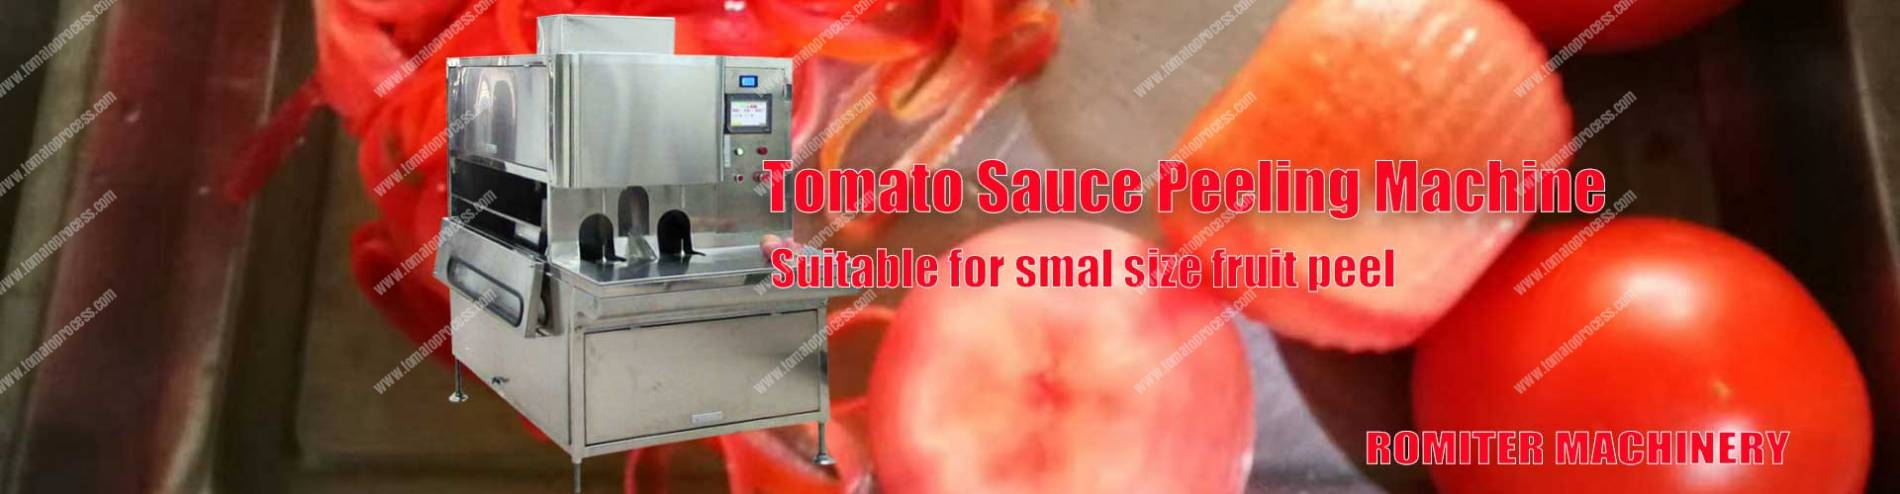 Banner05-Automatic-Tomato-Knife-Peeling-Machine-Supplier-Manufacture